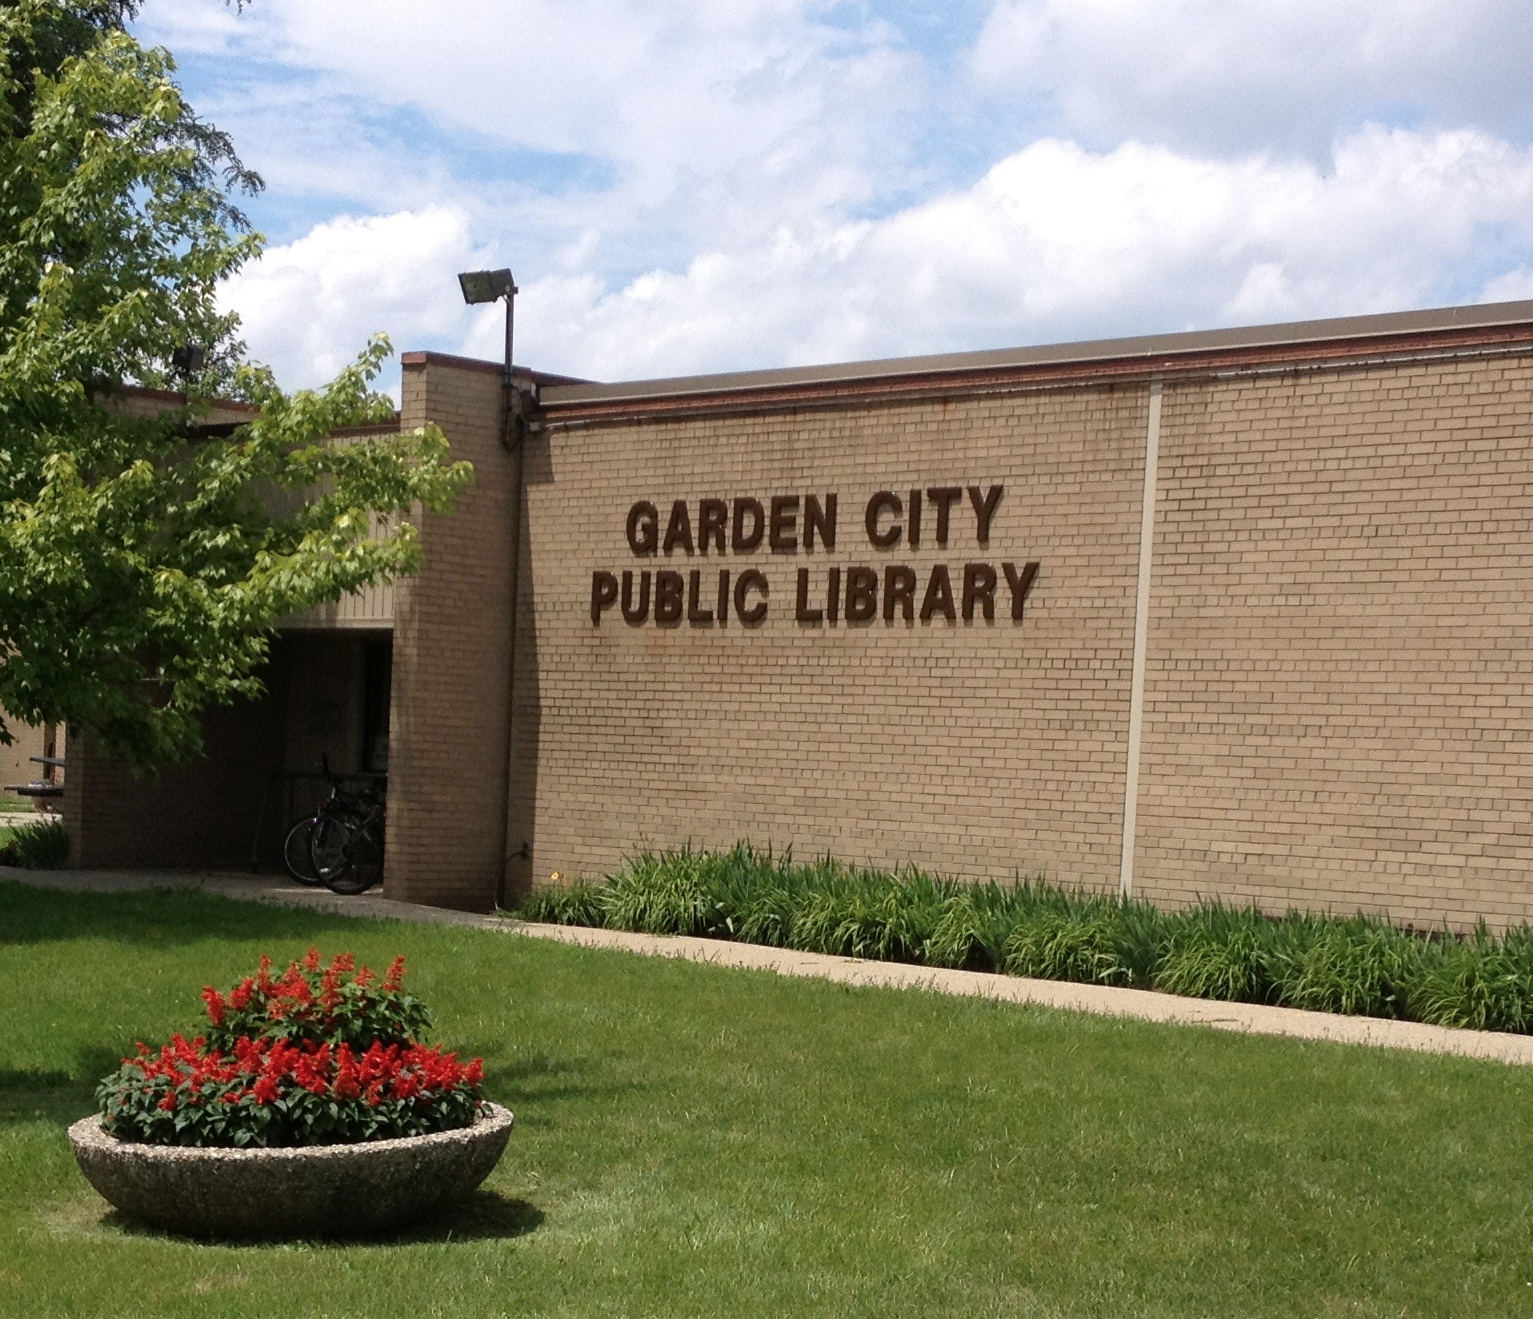 Mission & History - Garden City Public Library